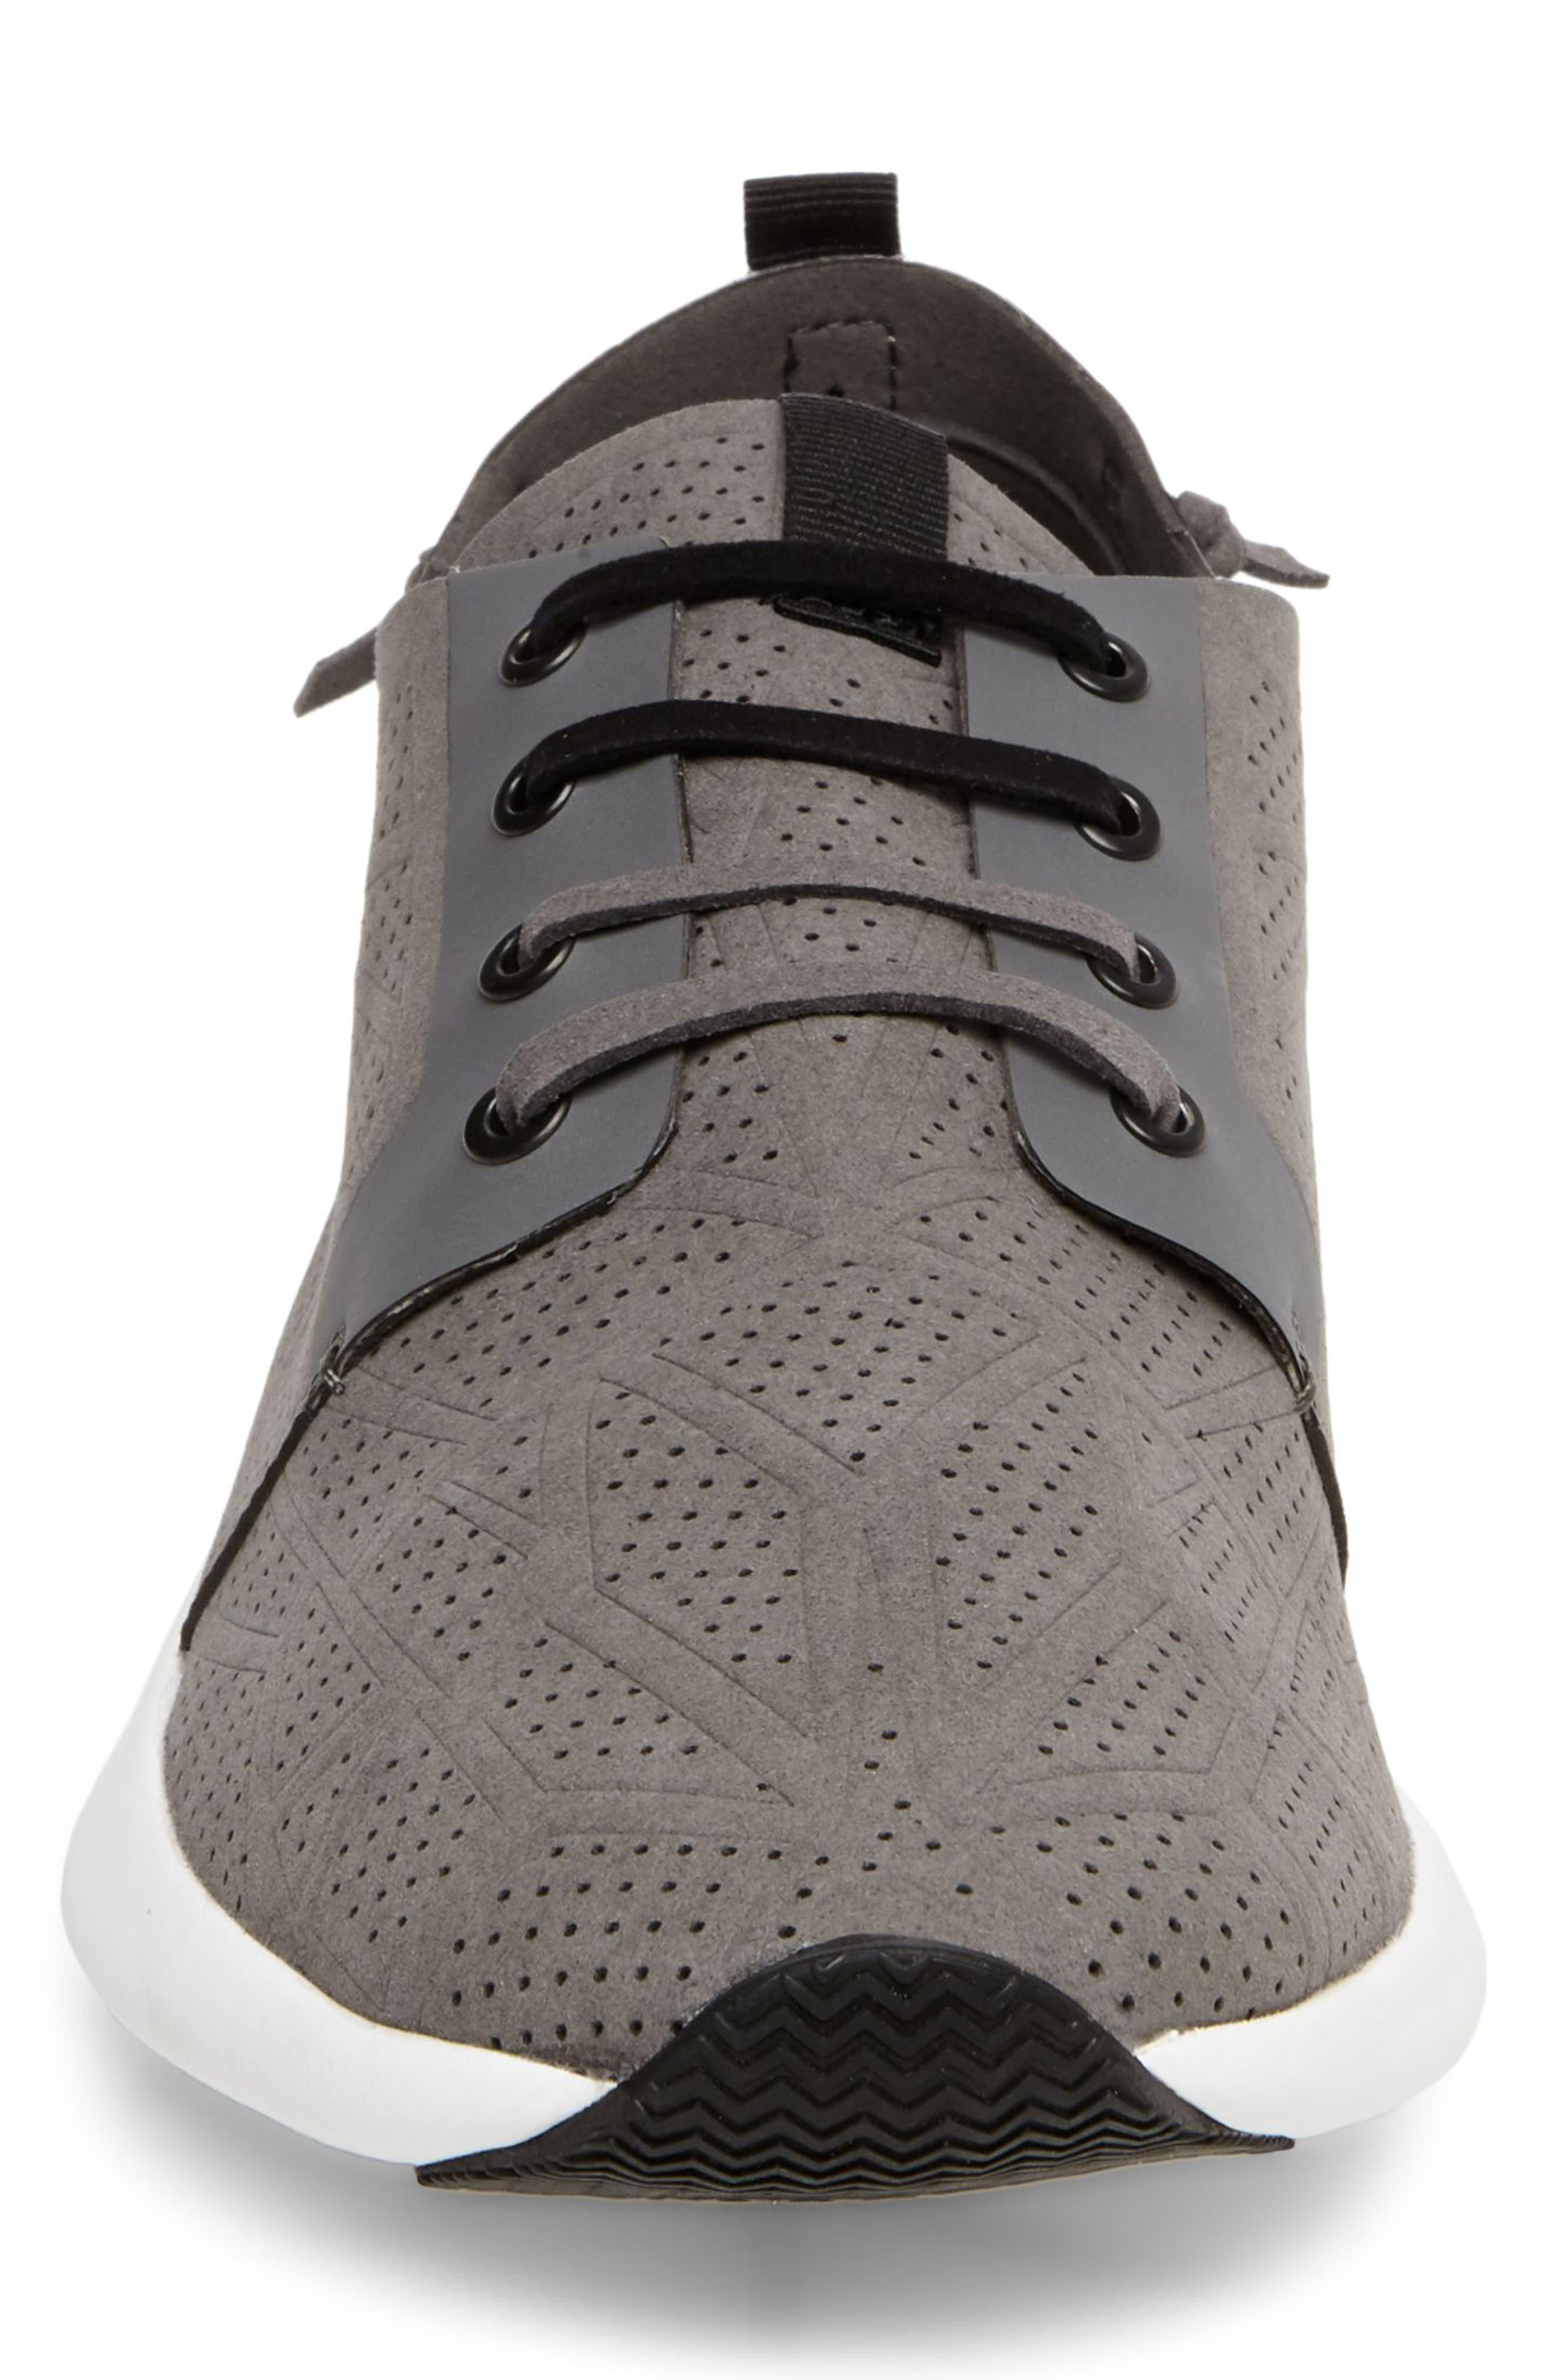 Batali Perforated Sneaker,                             Alternate thumbnail 4, color,                             Grey